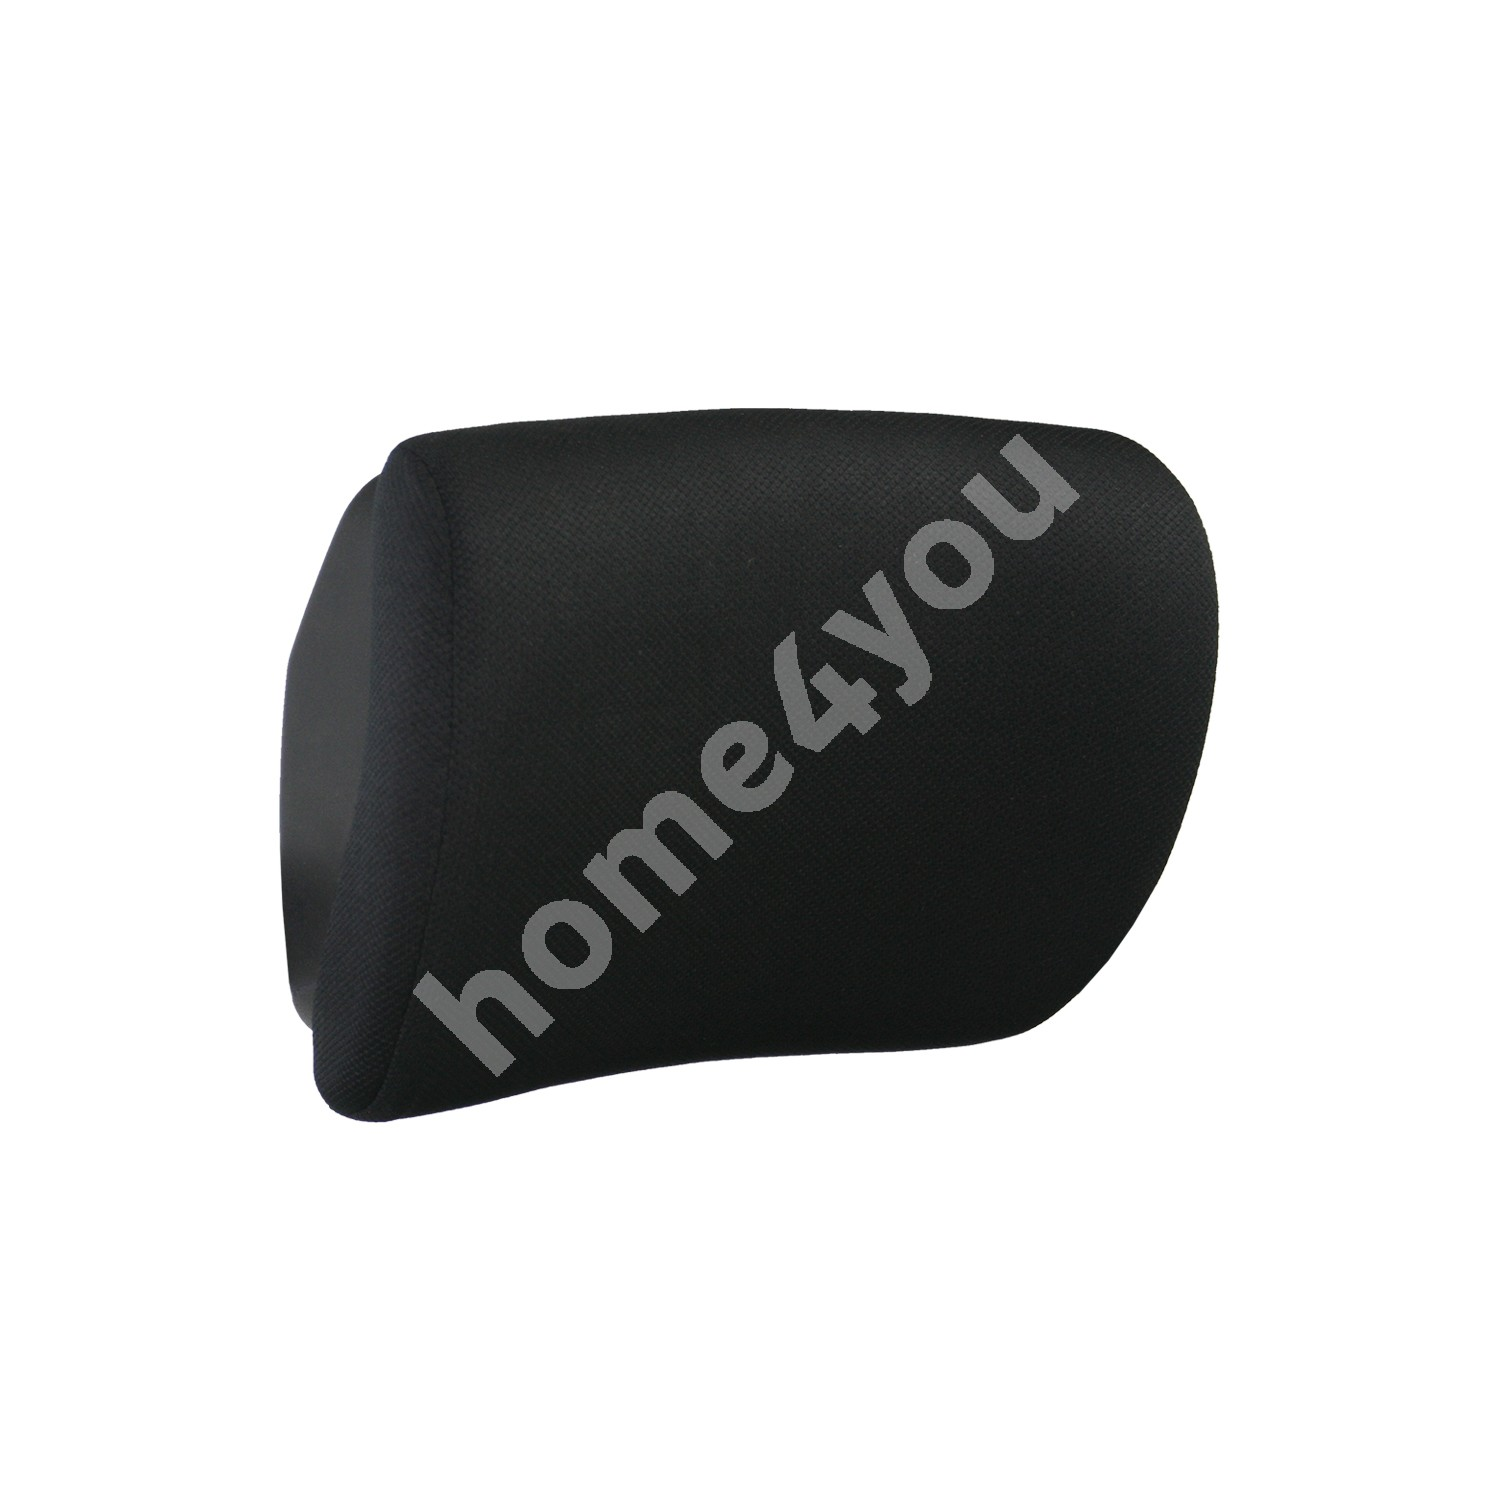 Headrest FULKRUM 29x22x12cm, cover material: fabric, color: black